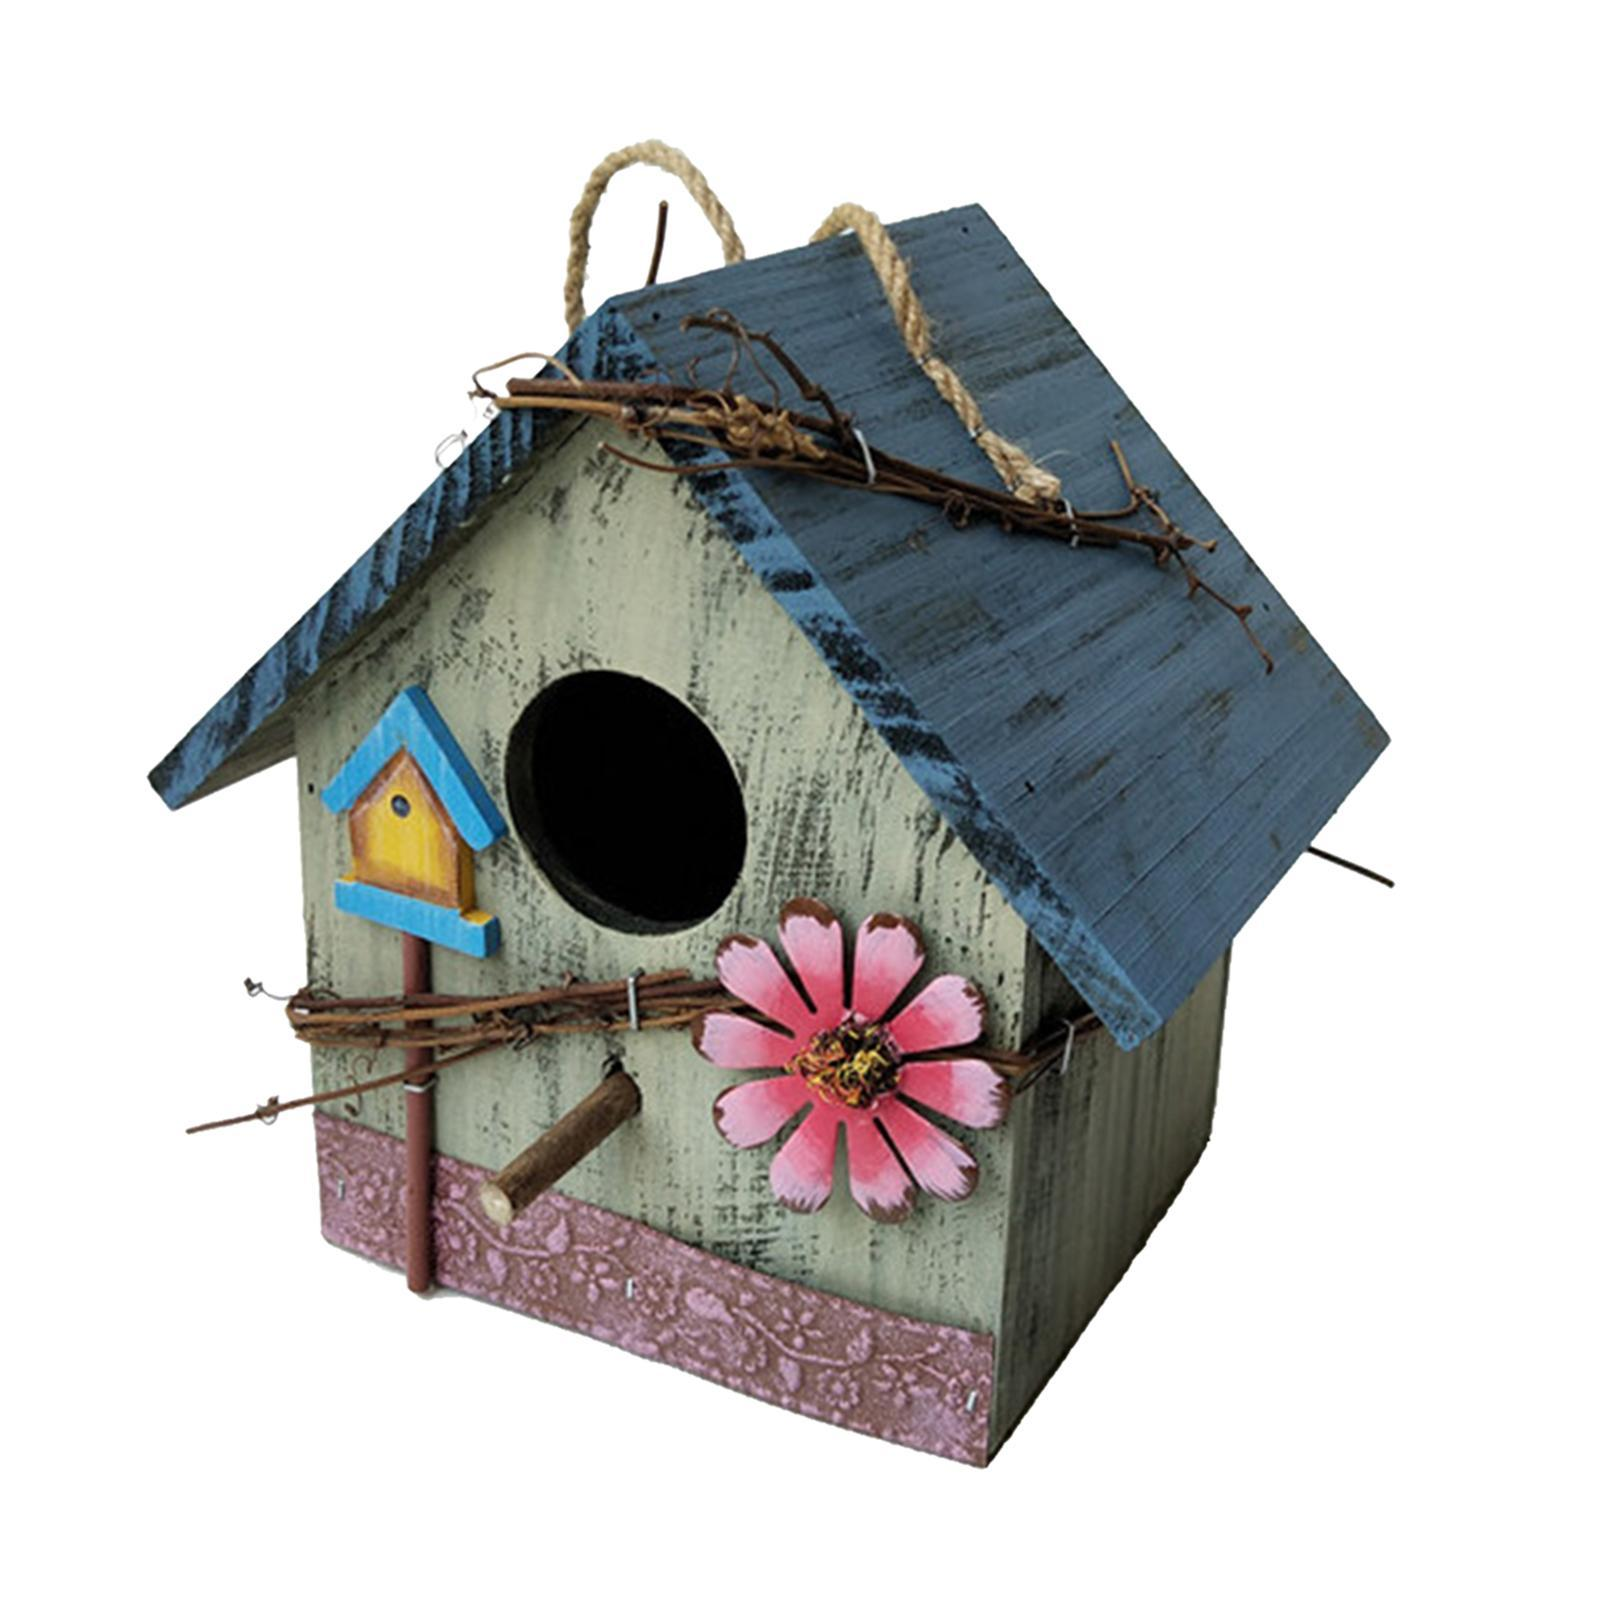 thumbnail 29 - Antique Hand Painted Wood Birdhouse Decorative Outdoor Bird House Garden